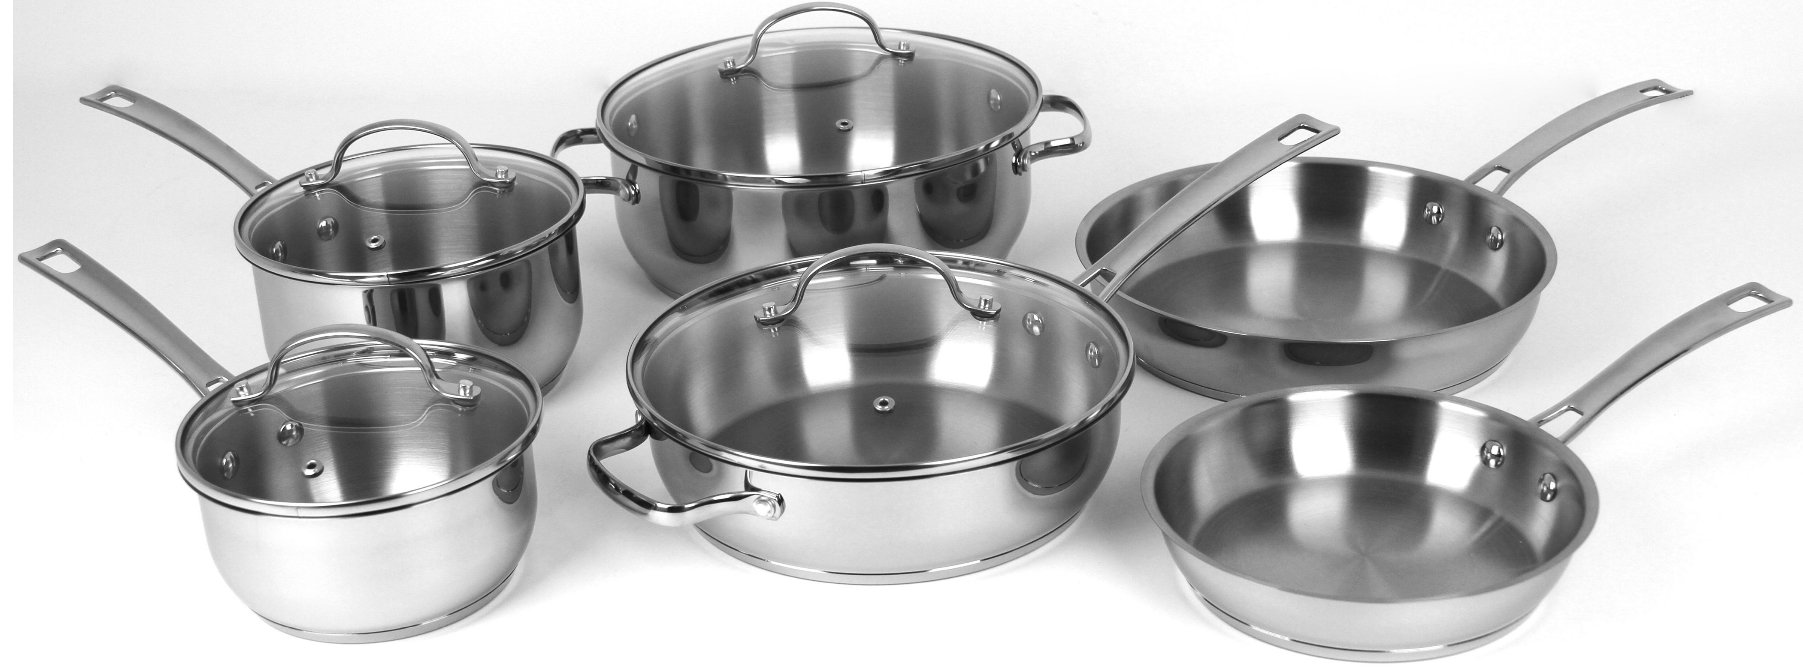 Oneida.com – Receive an Additional 20% Off Your Entire Purchase! Premium 10 Piece Stainless Steel Cookware Set Only $74.99, Reg $119.99!